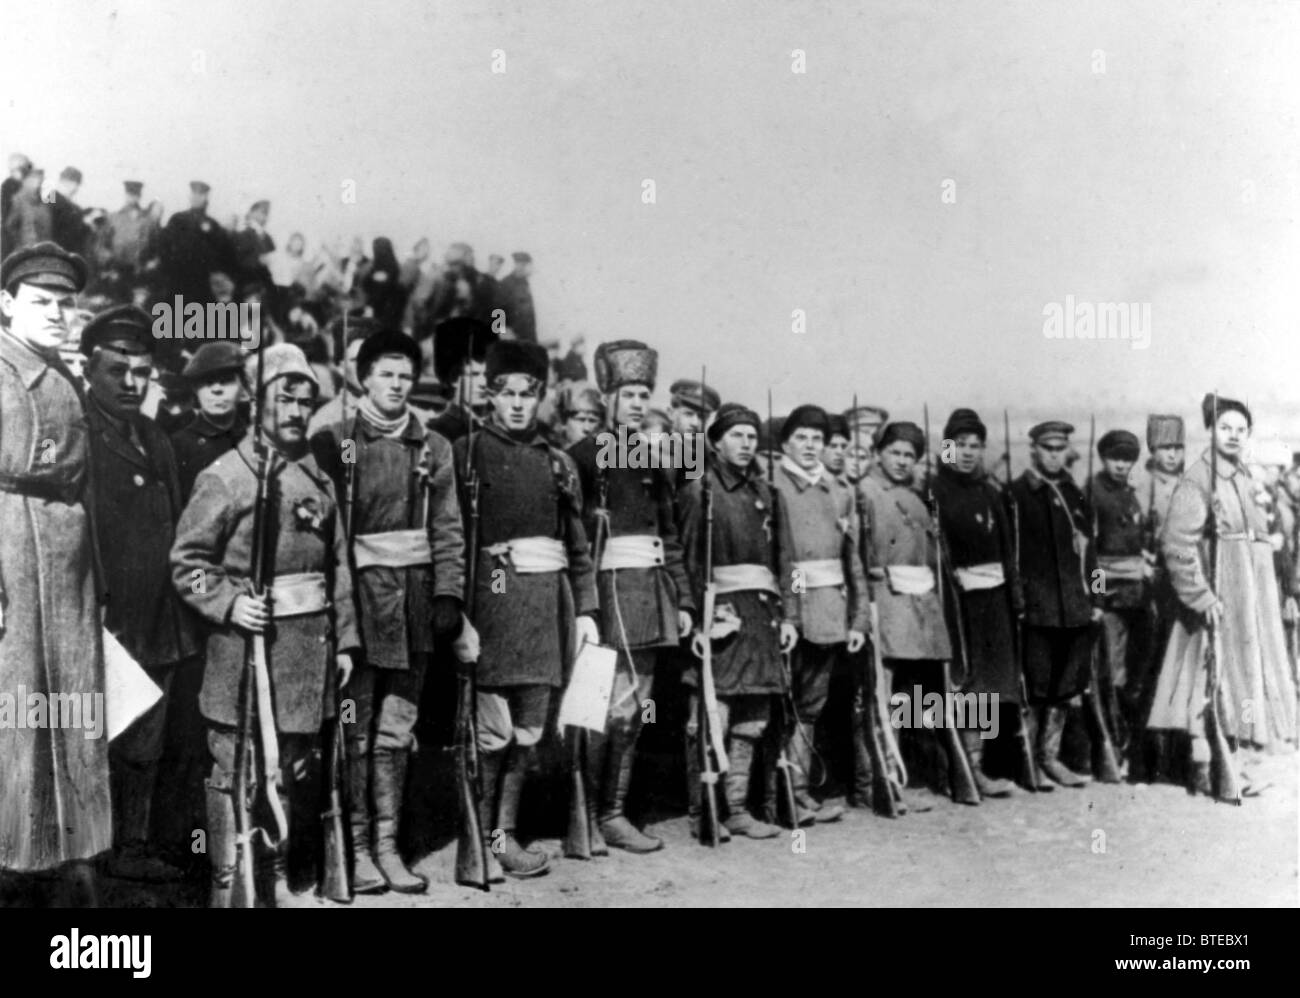 WWI. A regiment of poor peasants prior to their sending off to the battlefront. 1918. - Stock Image